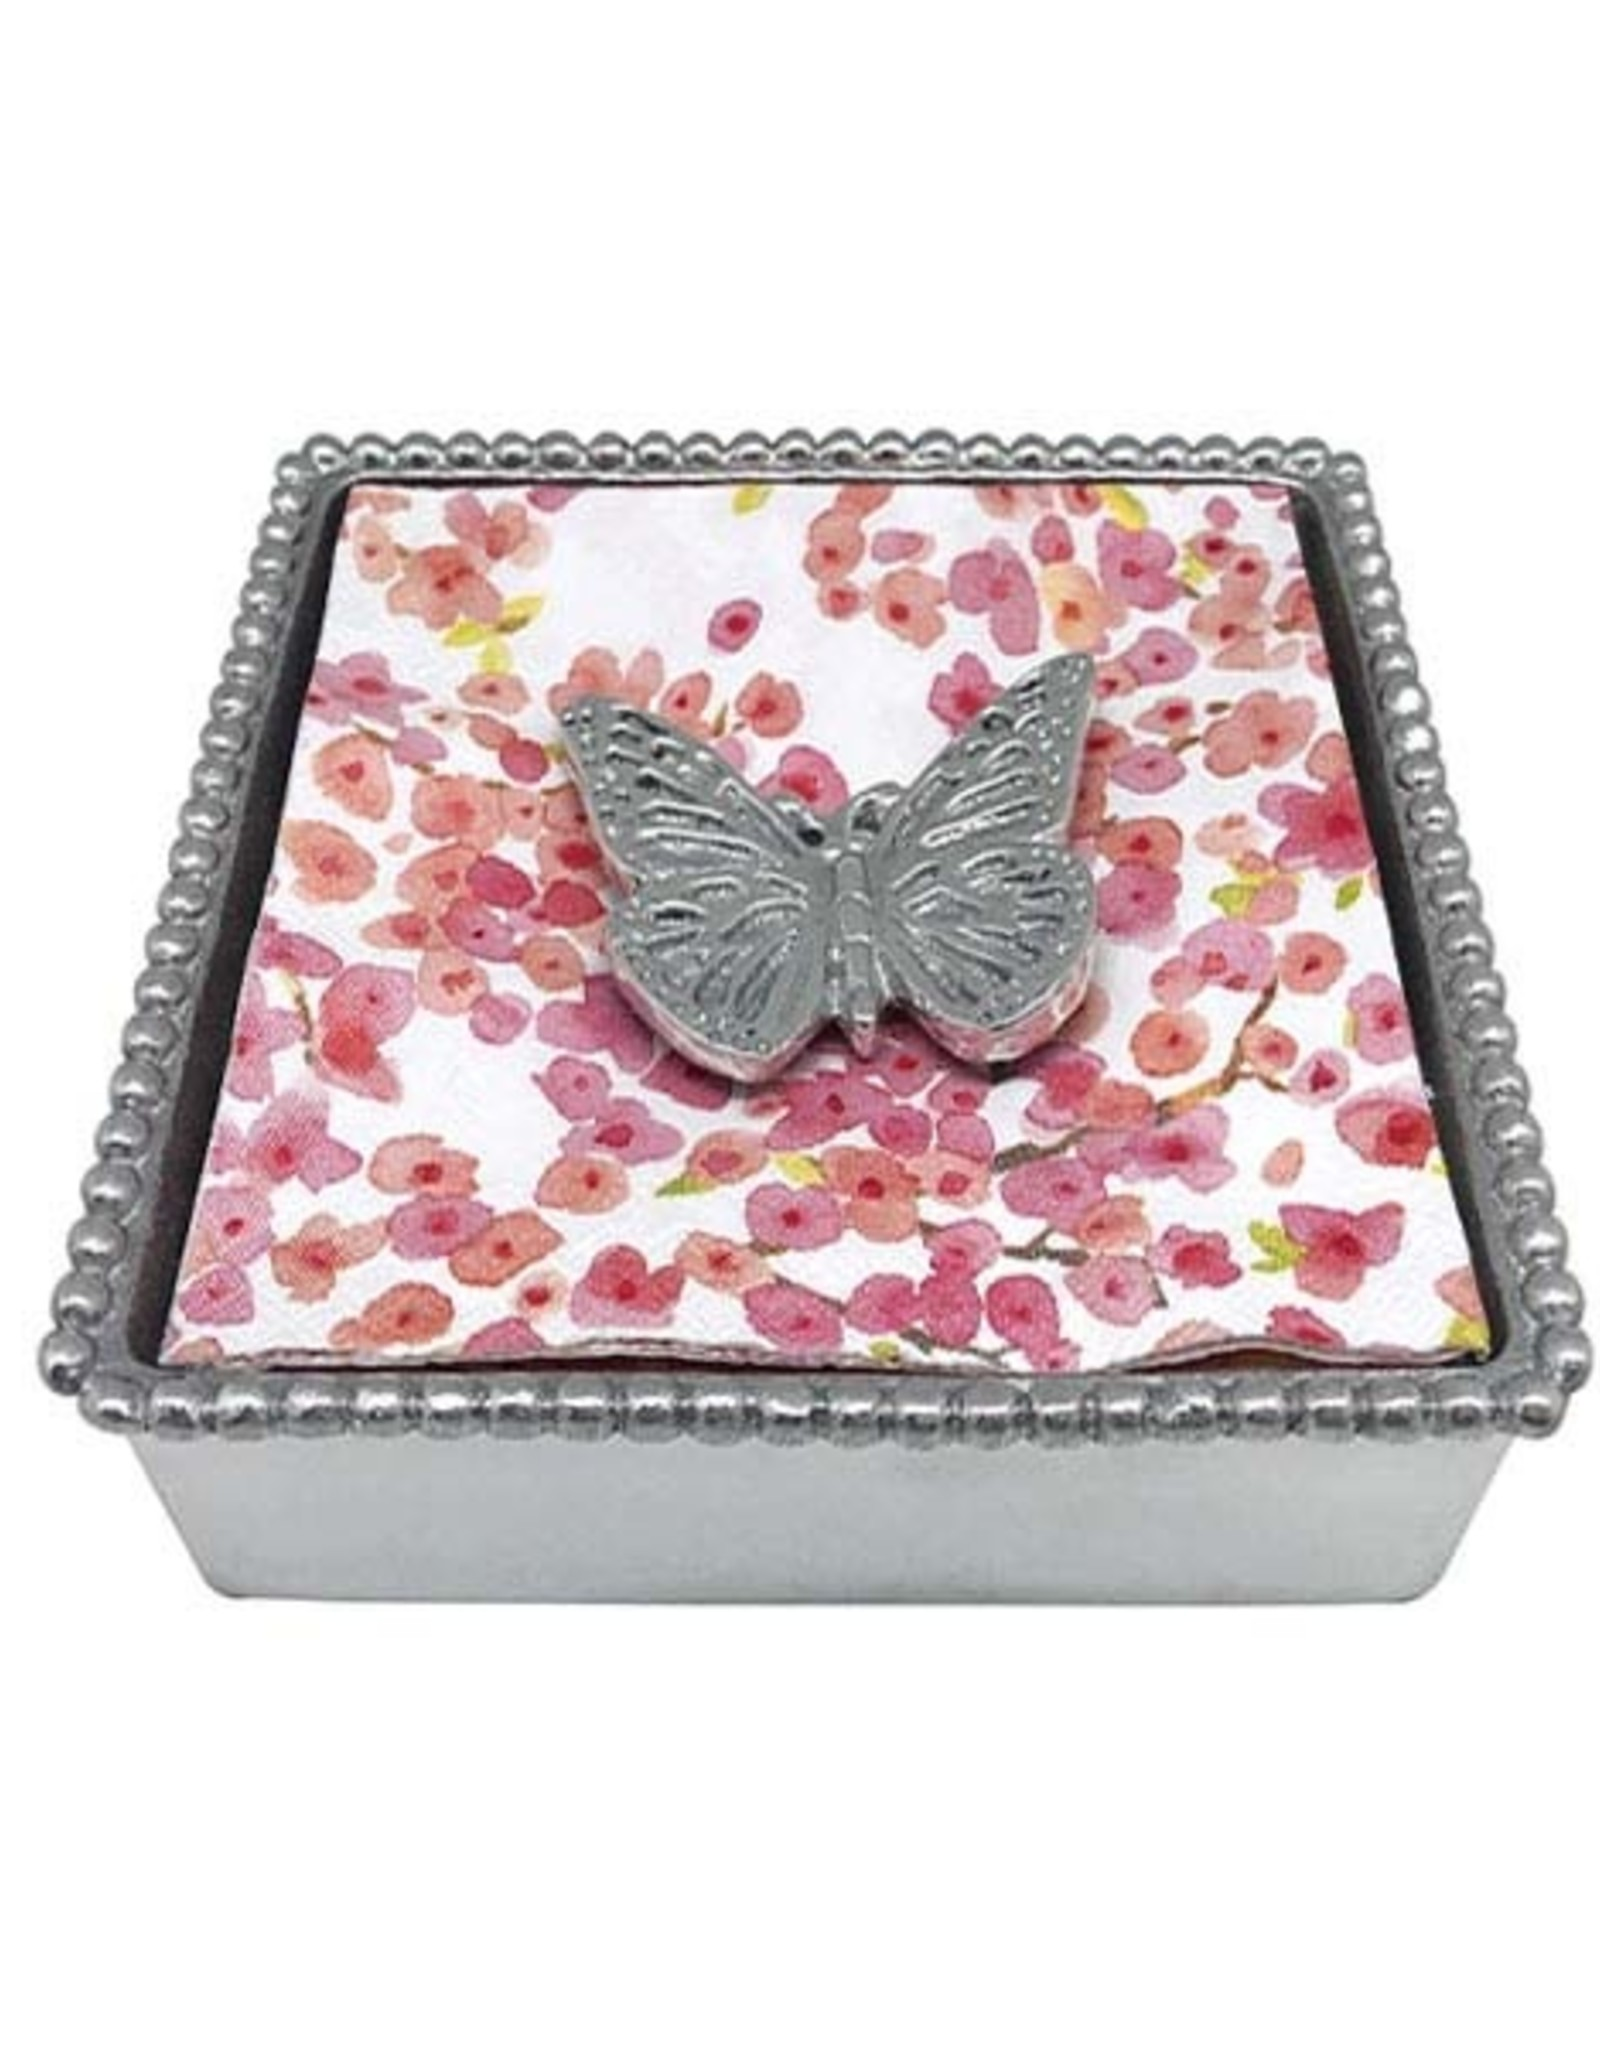 Mariposa Cocktail Napkin Box Sets by Mariposa